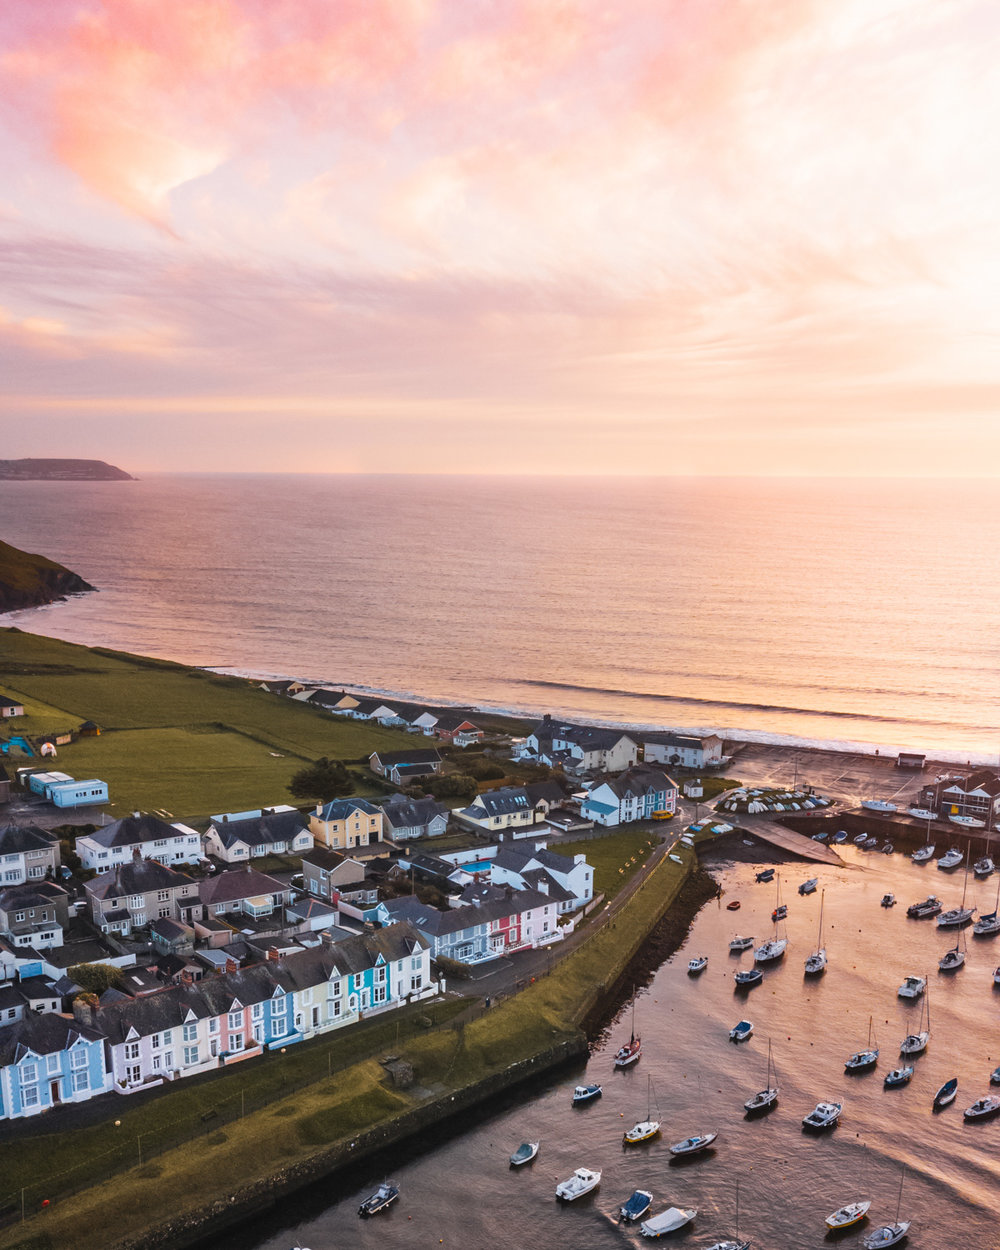 Aberaeron harbour drone sunset // The Most Beautiful Places to Visit in Wales // #readysetjetset #wales #uk #welsh #travel #photospots #blogpost